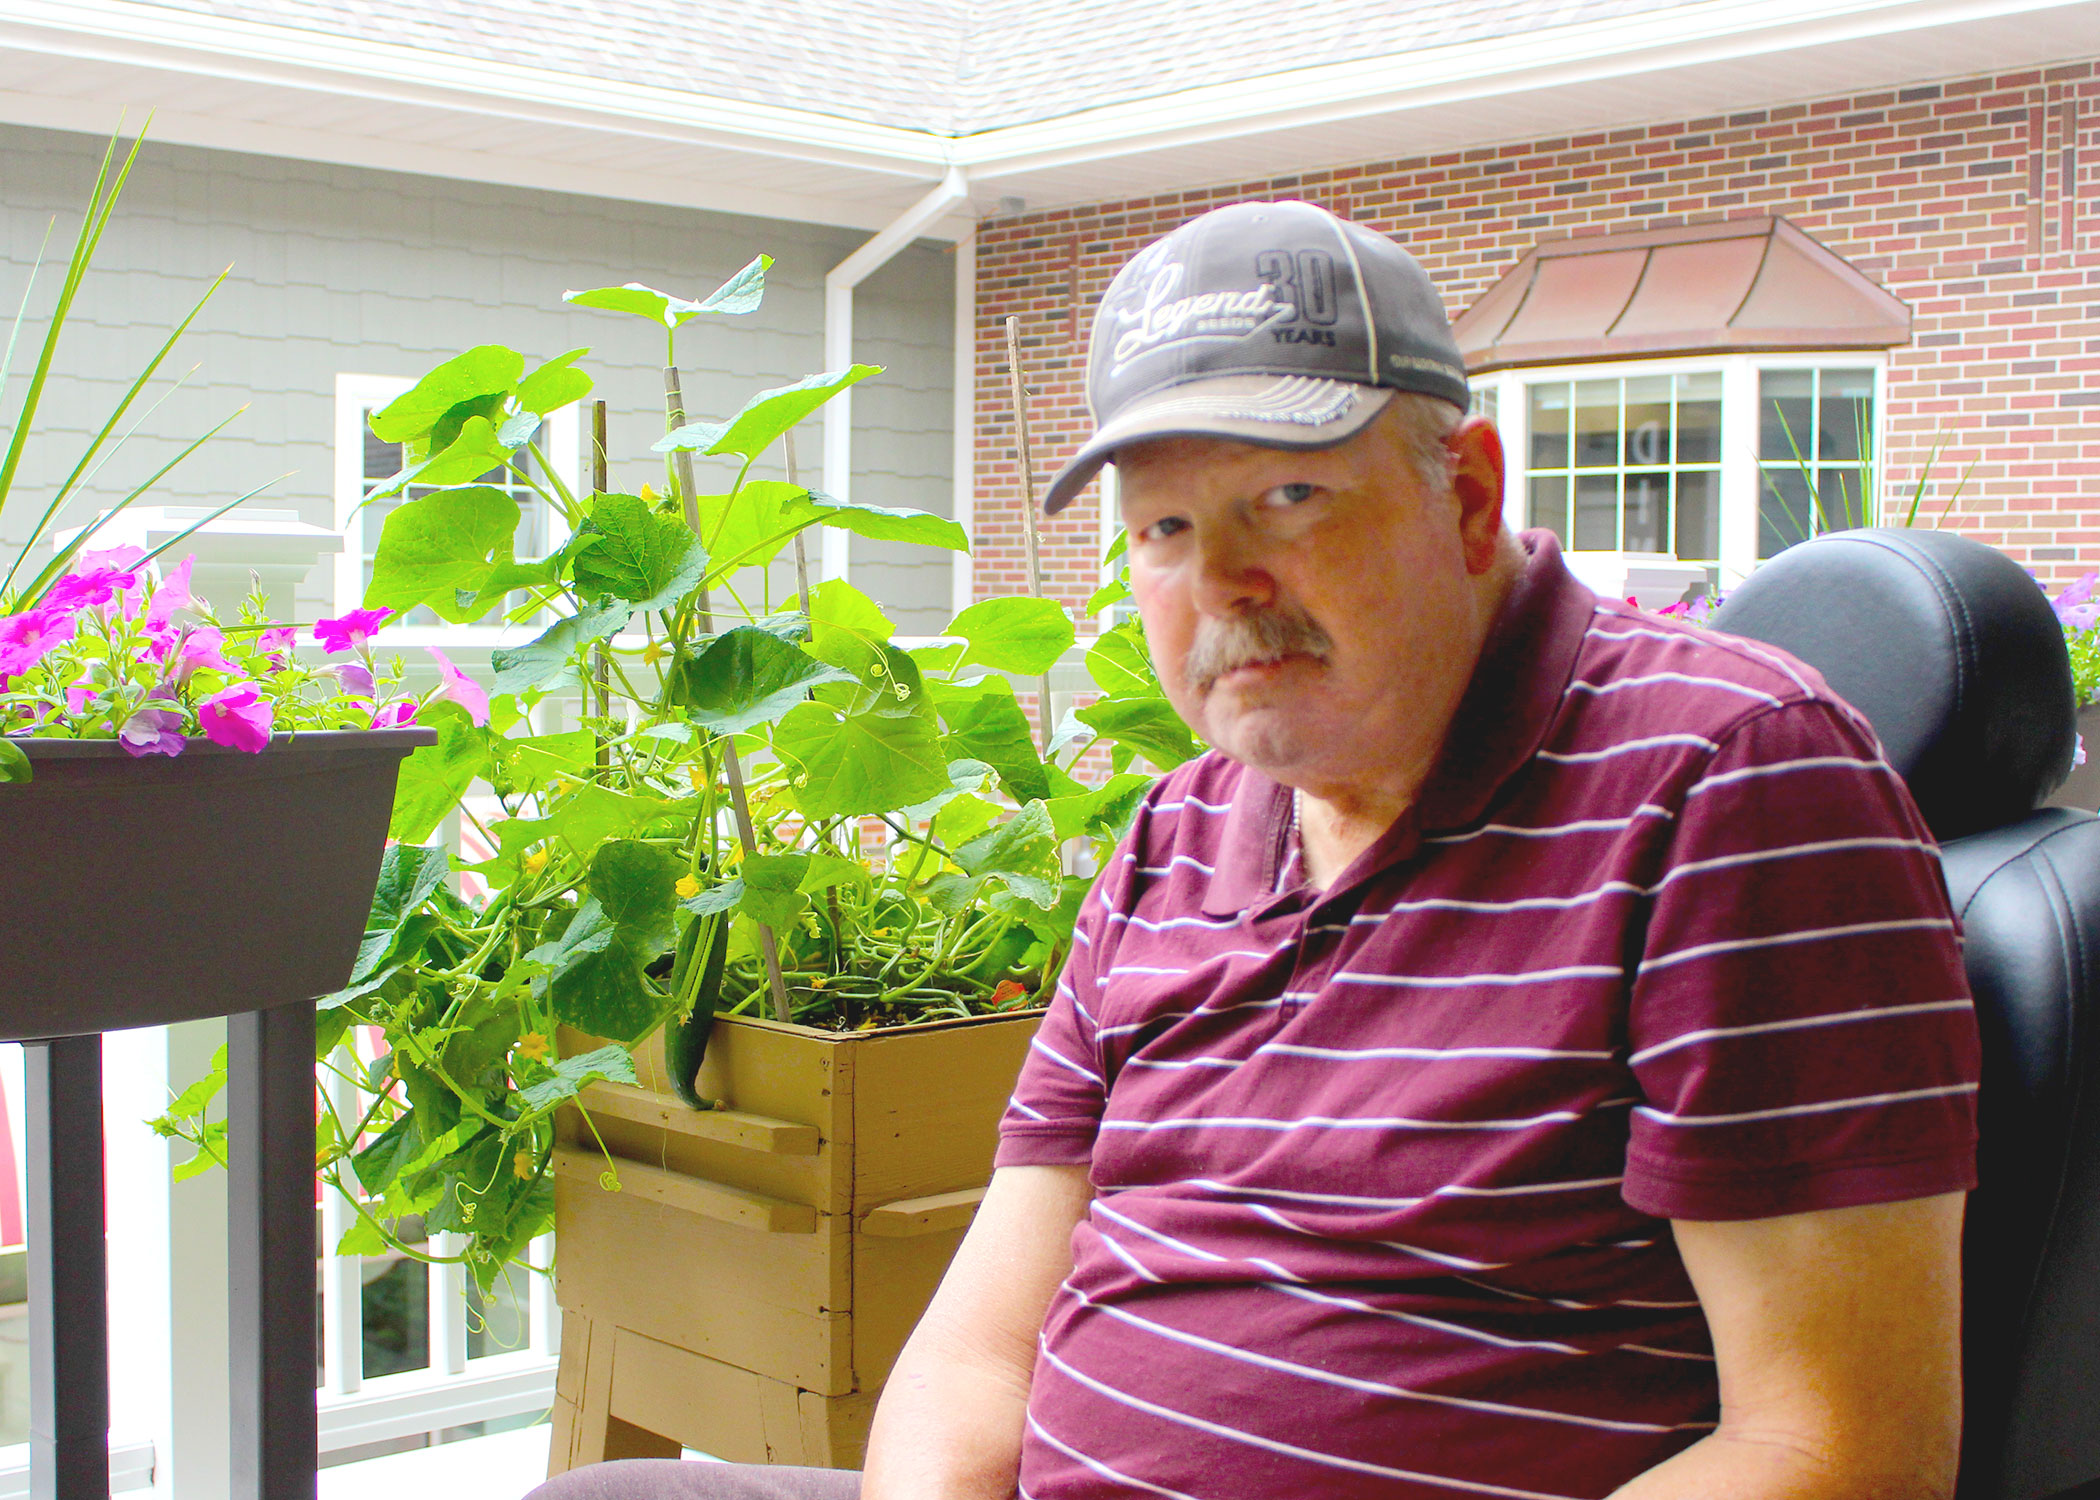 Enhanced Assisted Living Male resident wearing a maroon stripe shirt and gray baseball cap sitting on the porch with garden plants and flowers he is growing